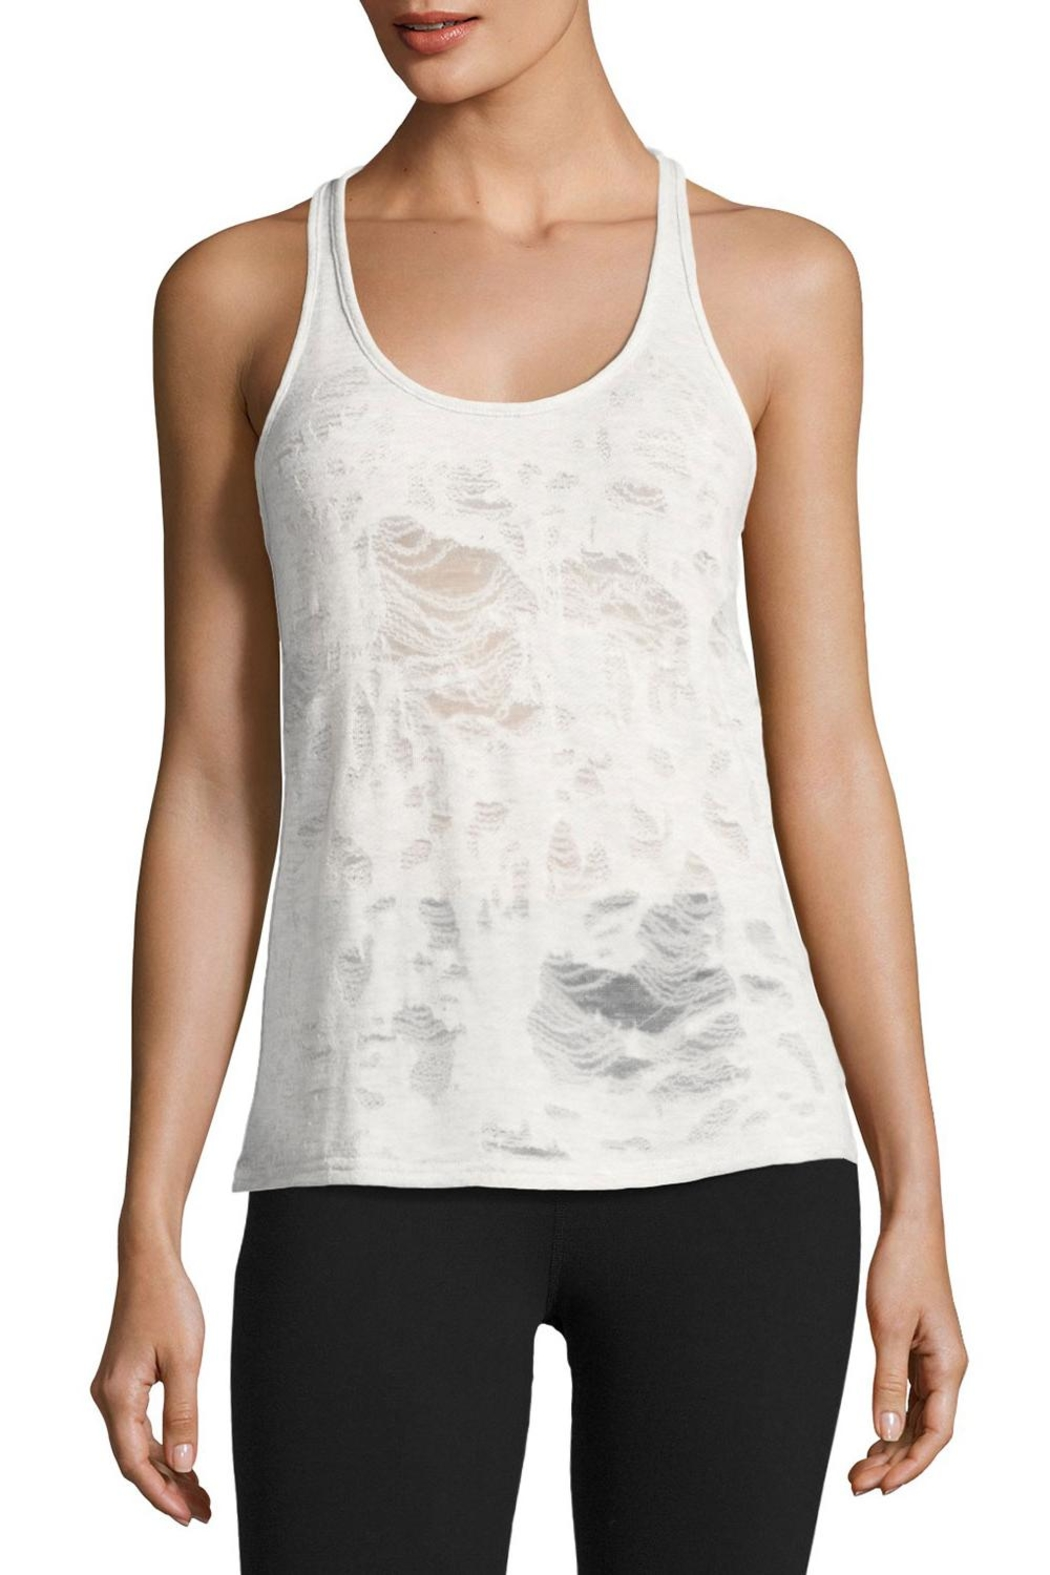 ALO Yoga Grey Pure Tank - Front Cropped Image